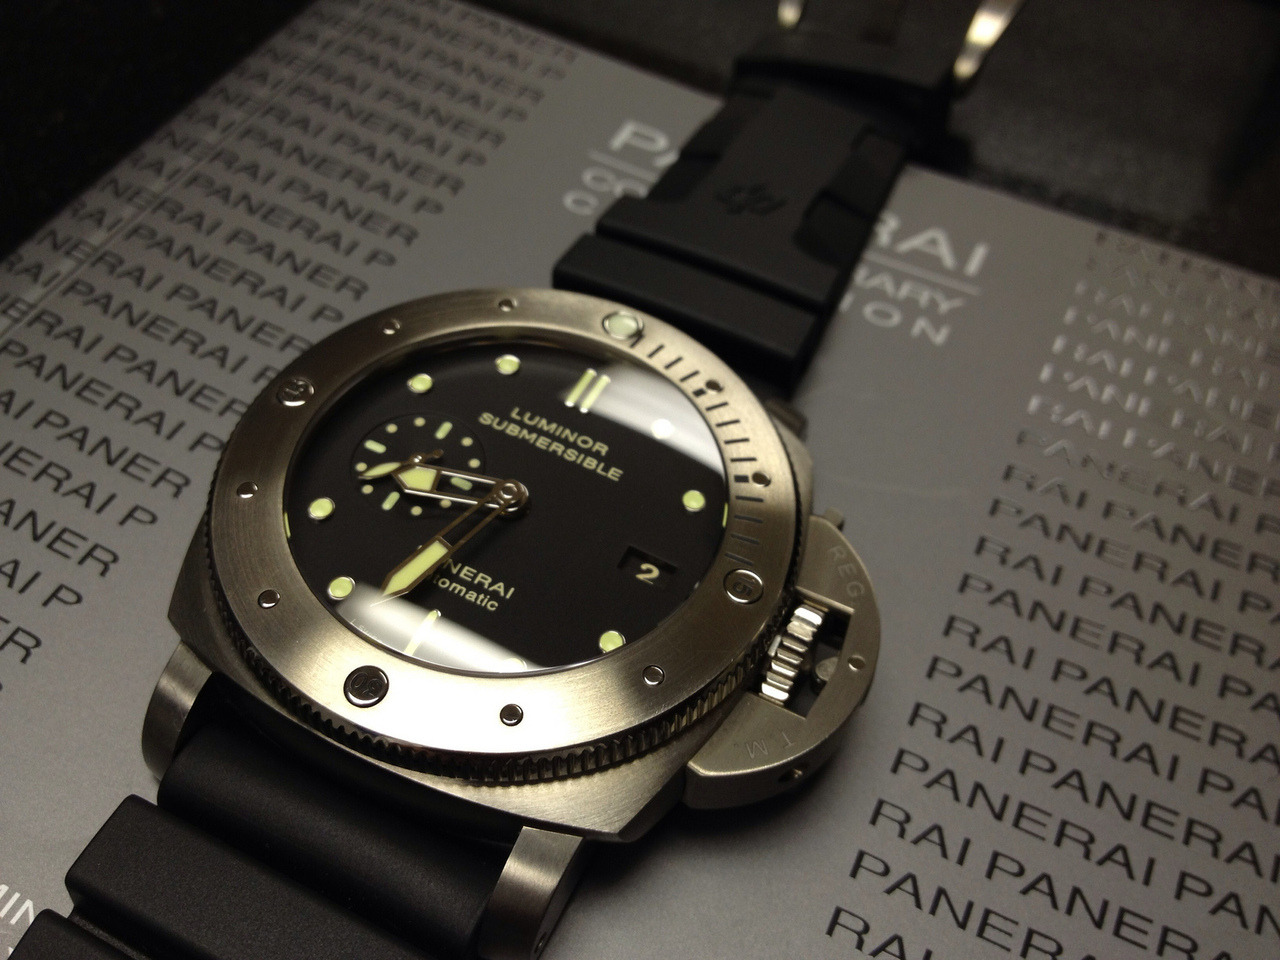 kimchiminji:  New Officine Panerai  did not upload sorry so late into this too busy doing other things than uploading from my cam